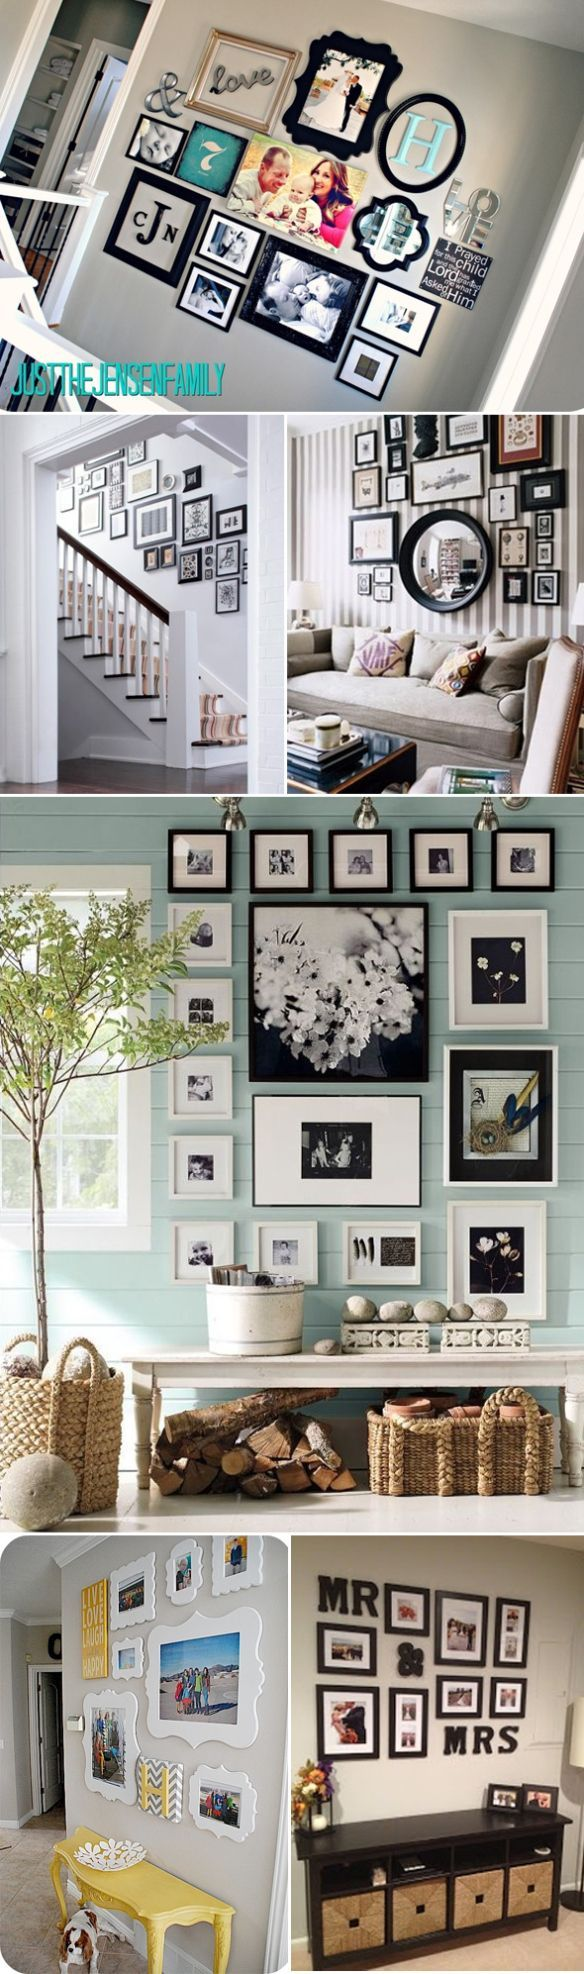 Great ideas for picture hanging arrangements!! - Cute Decor